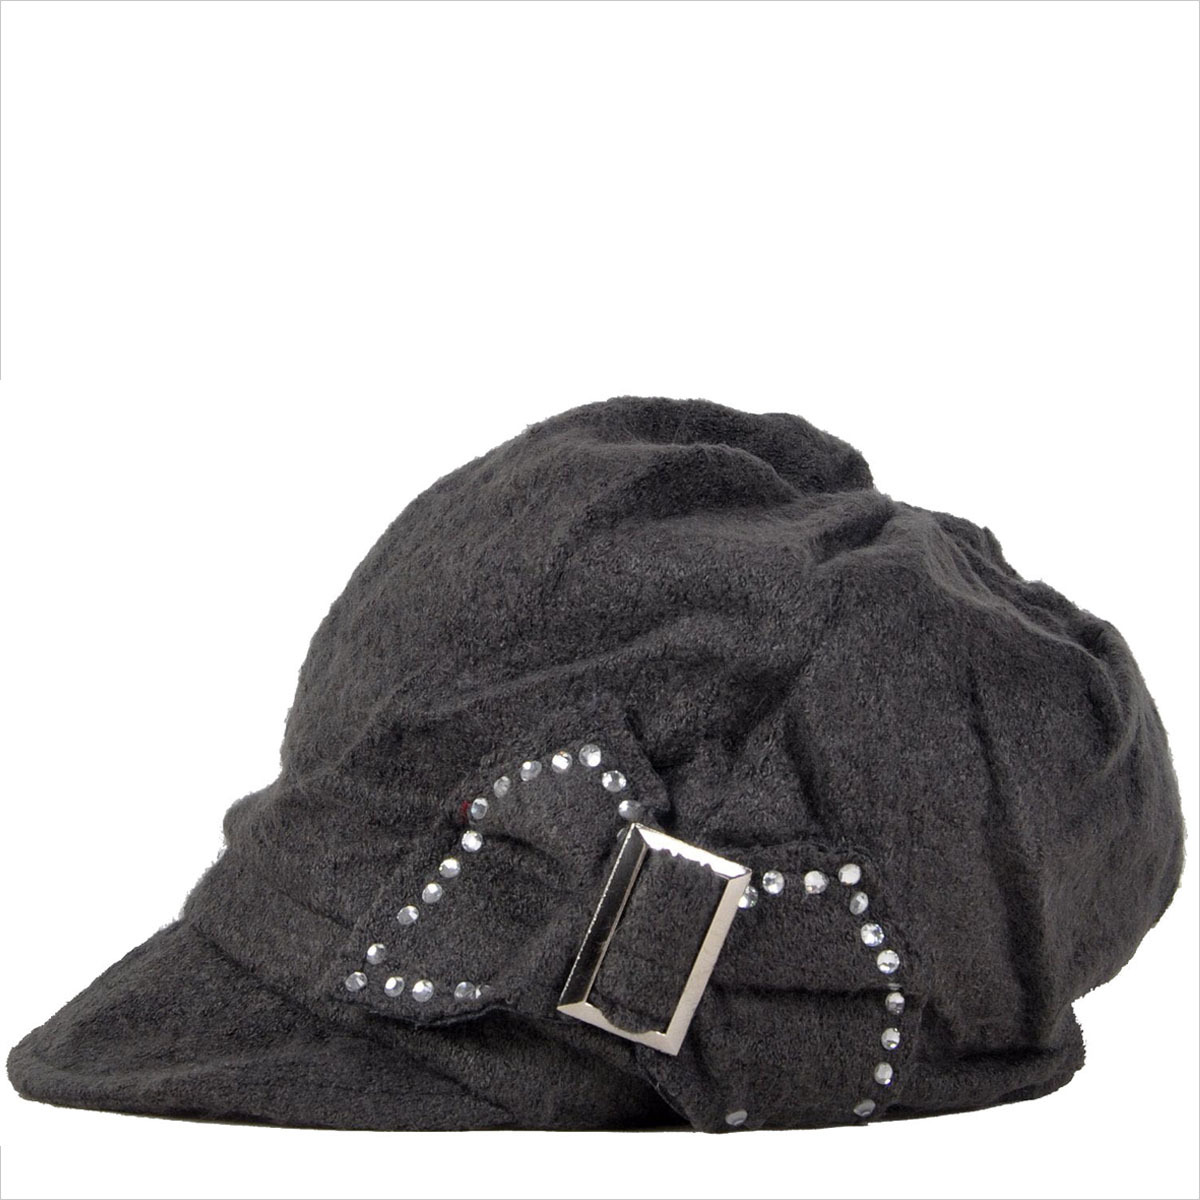 Octagonal hat autumn and winter women's trend fashion cap fashion